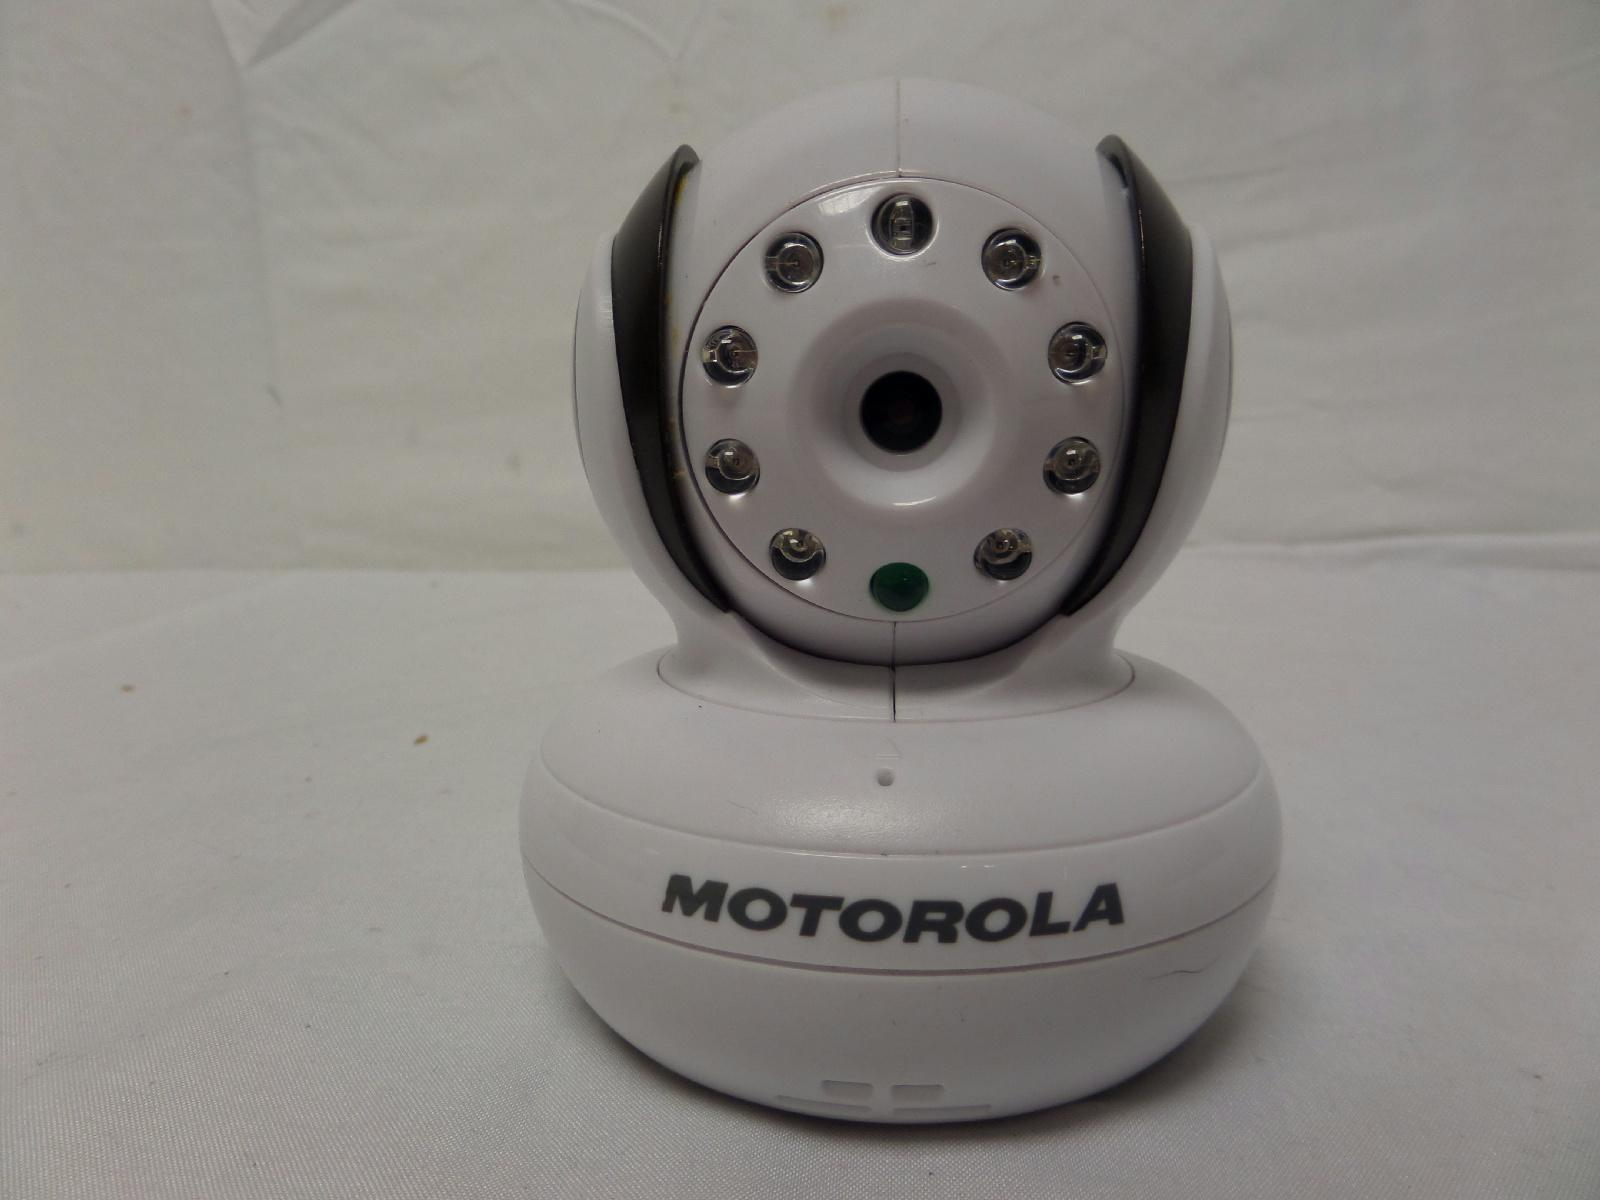 Motorola Extra Replacement Camera For Baby Monitor Mbp36bu